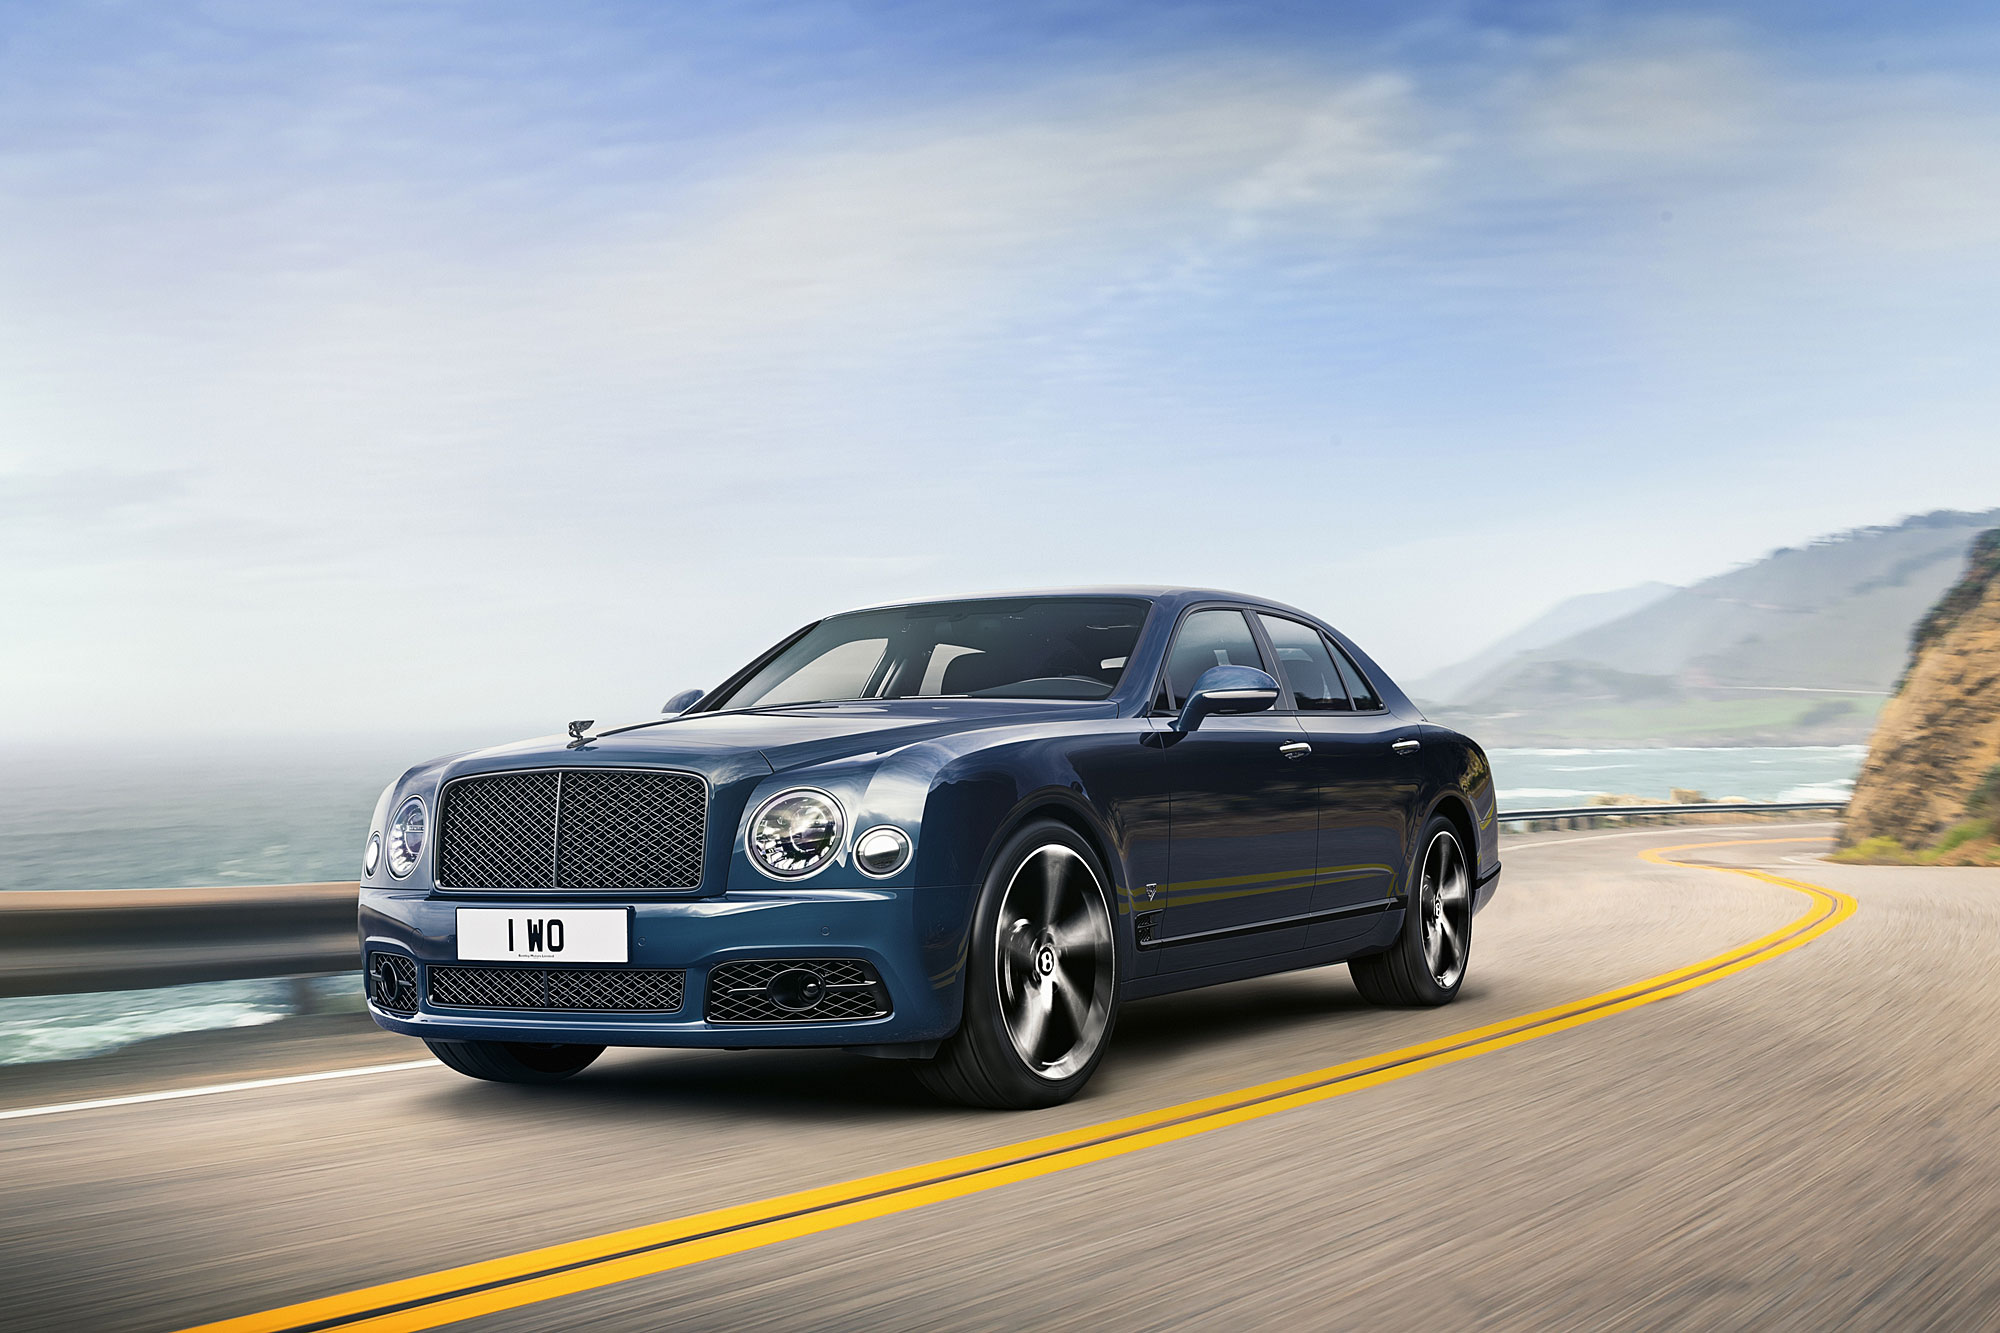 Mulsanne 6.75 Edition by Mulliner 是現行世代 Mulsanne 的最終特式車型。